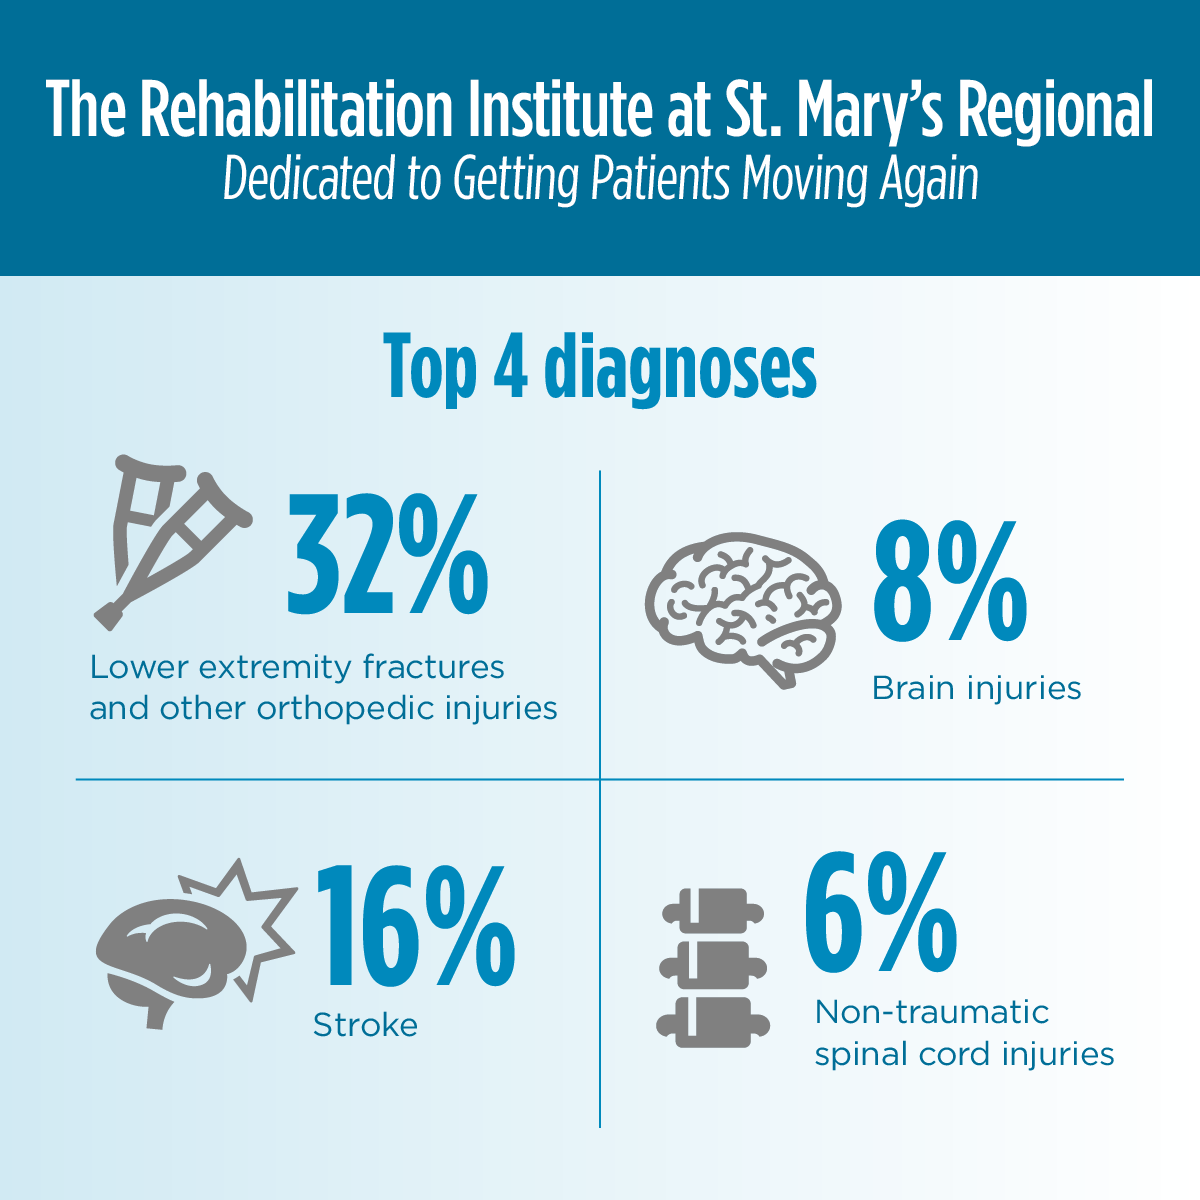 The top four diagnoses of patients seen at the Rehabilitation Institute at St. Mary's Regional are: 32 percent lower extremity fractures and other orthopedic injuries. 16 percent stroke. 8 percent brain injuries. 6 percent non-traumatic spinal cord injuries.